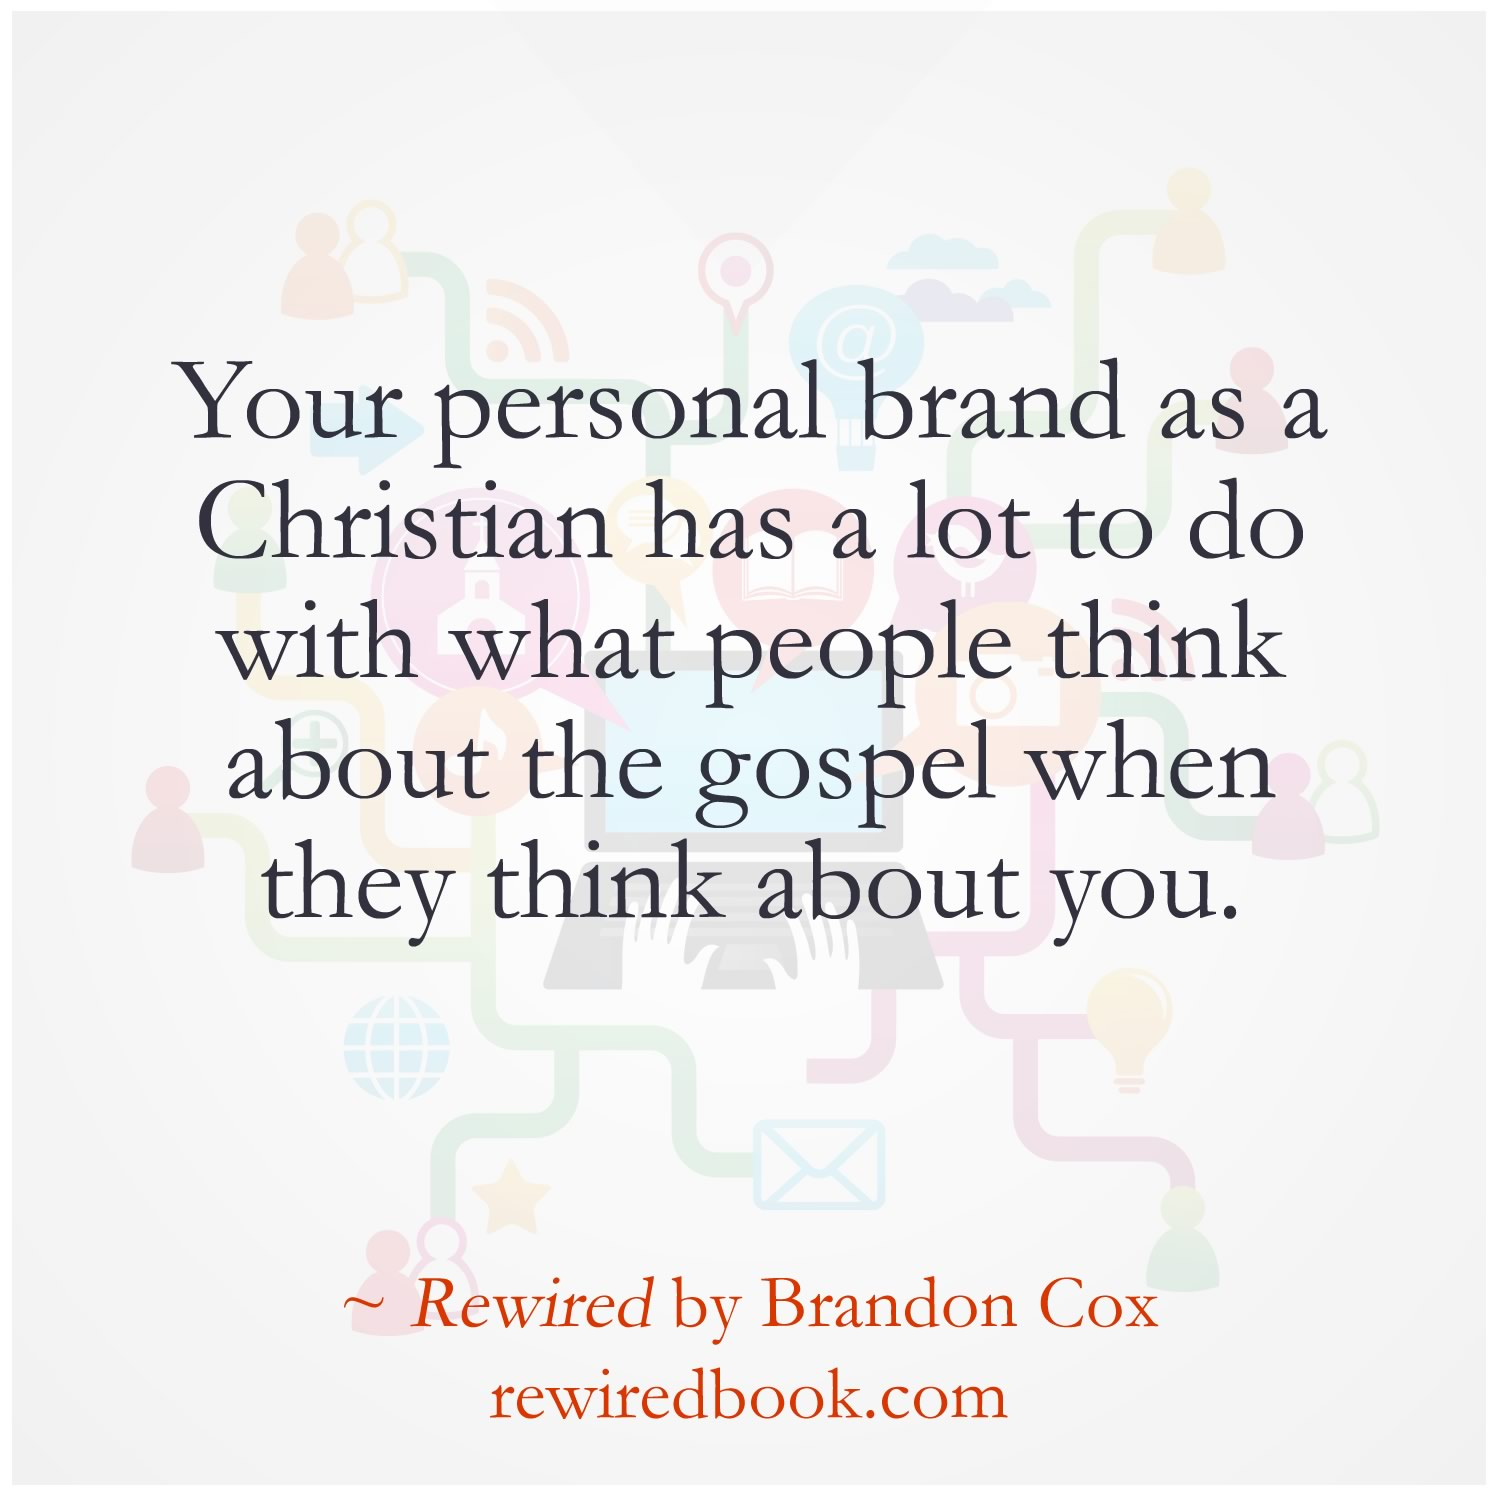 Your Brand Represents the Gospel